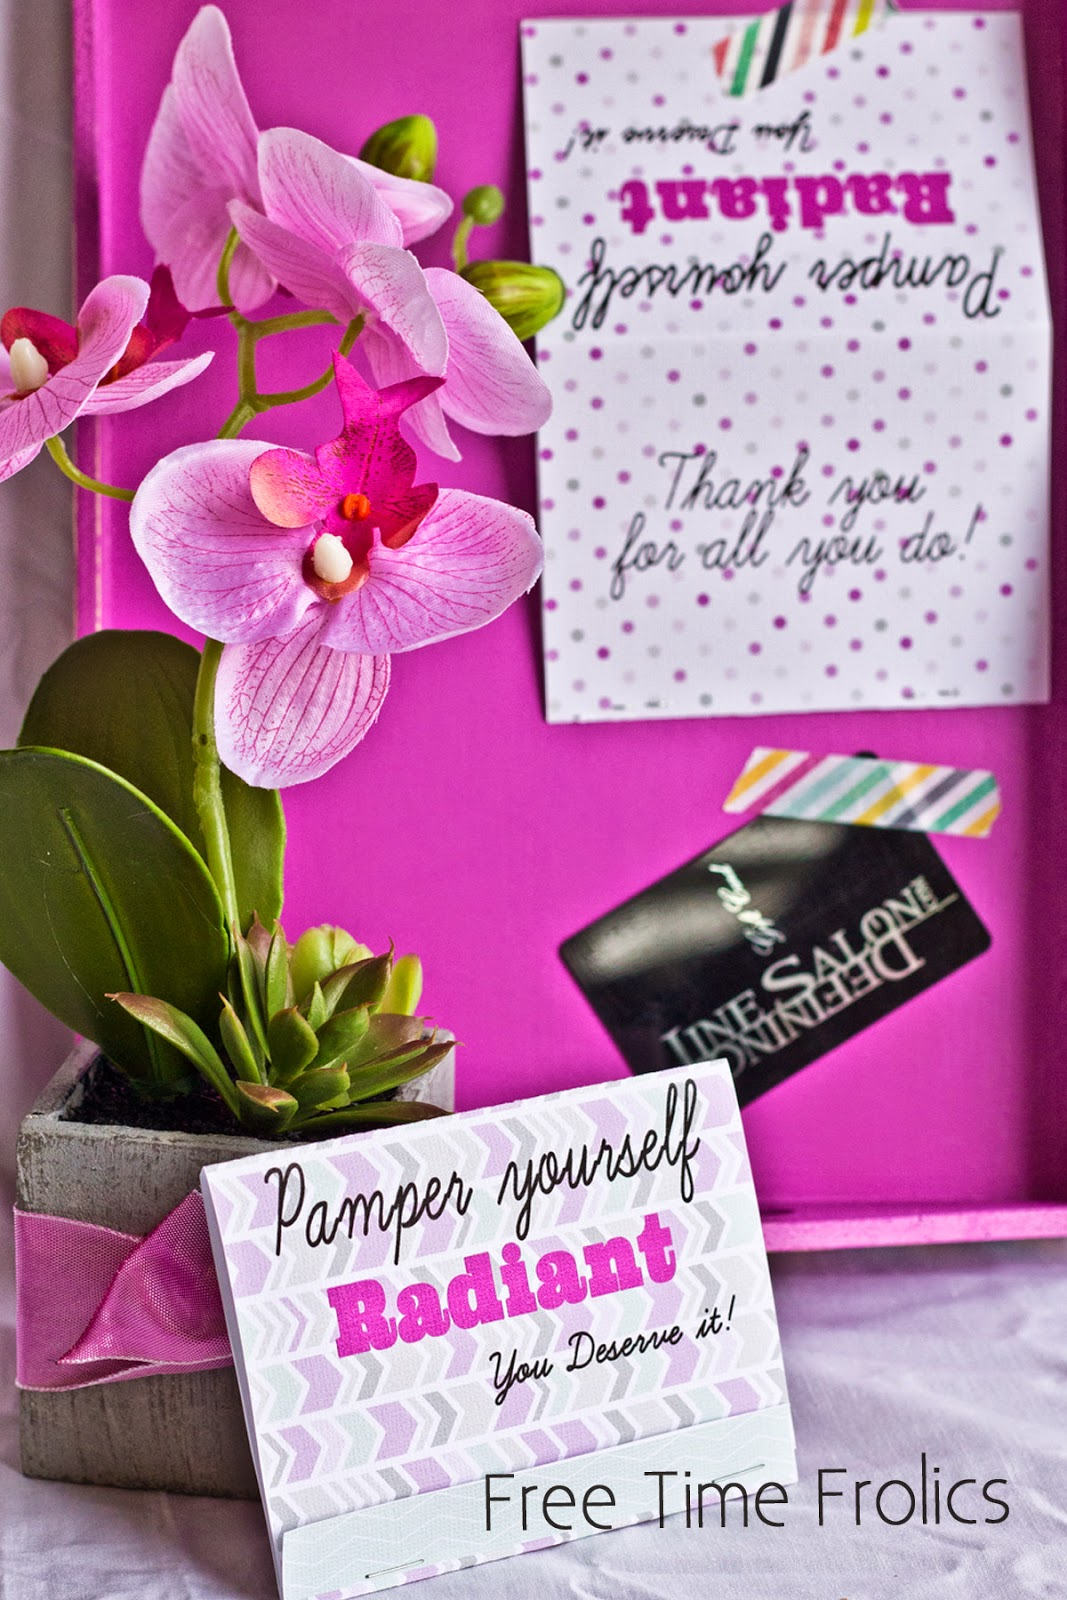 pamper yourself radiant gift card holder printable www.freetimefrolics.com